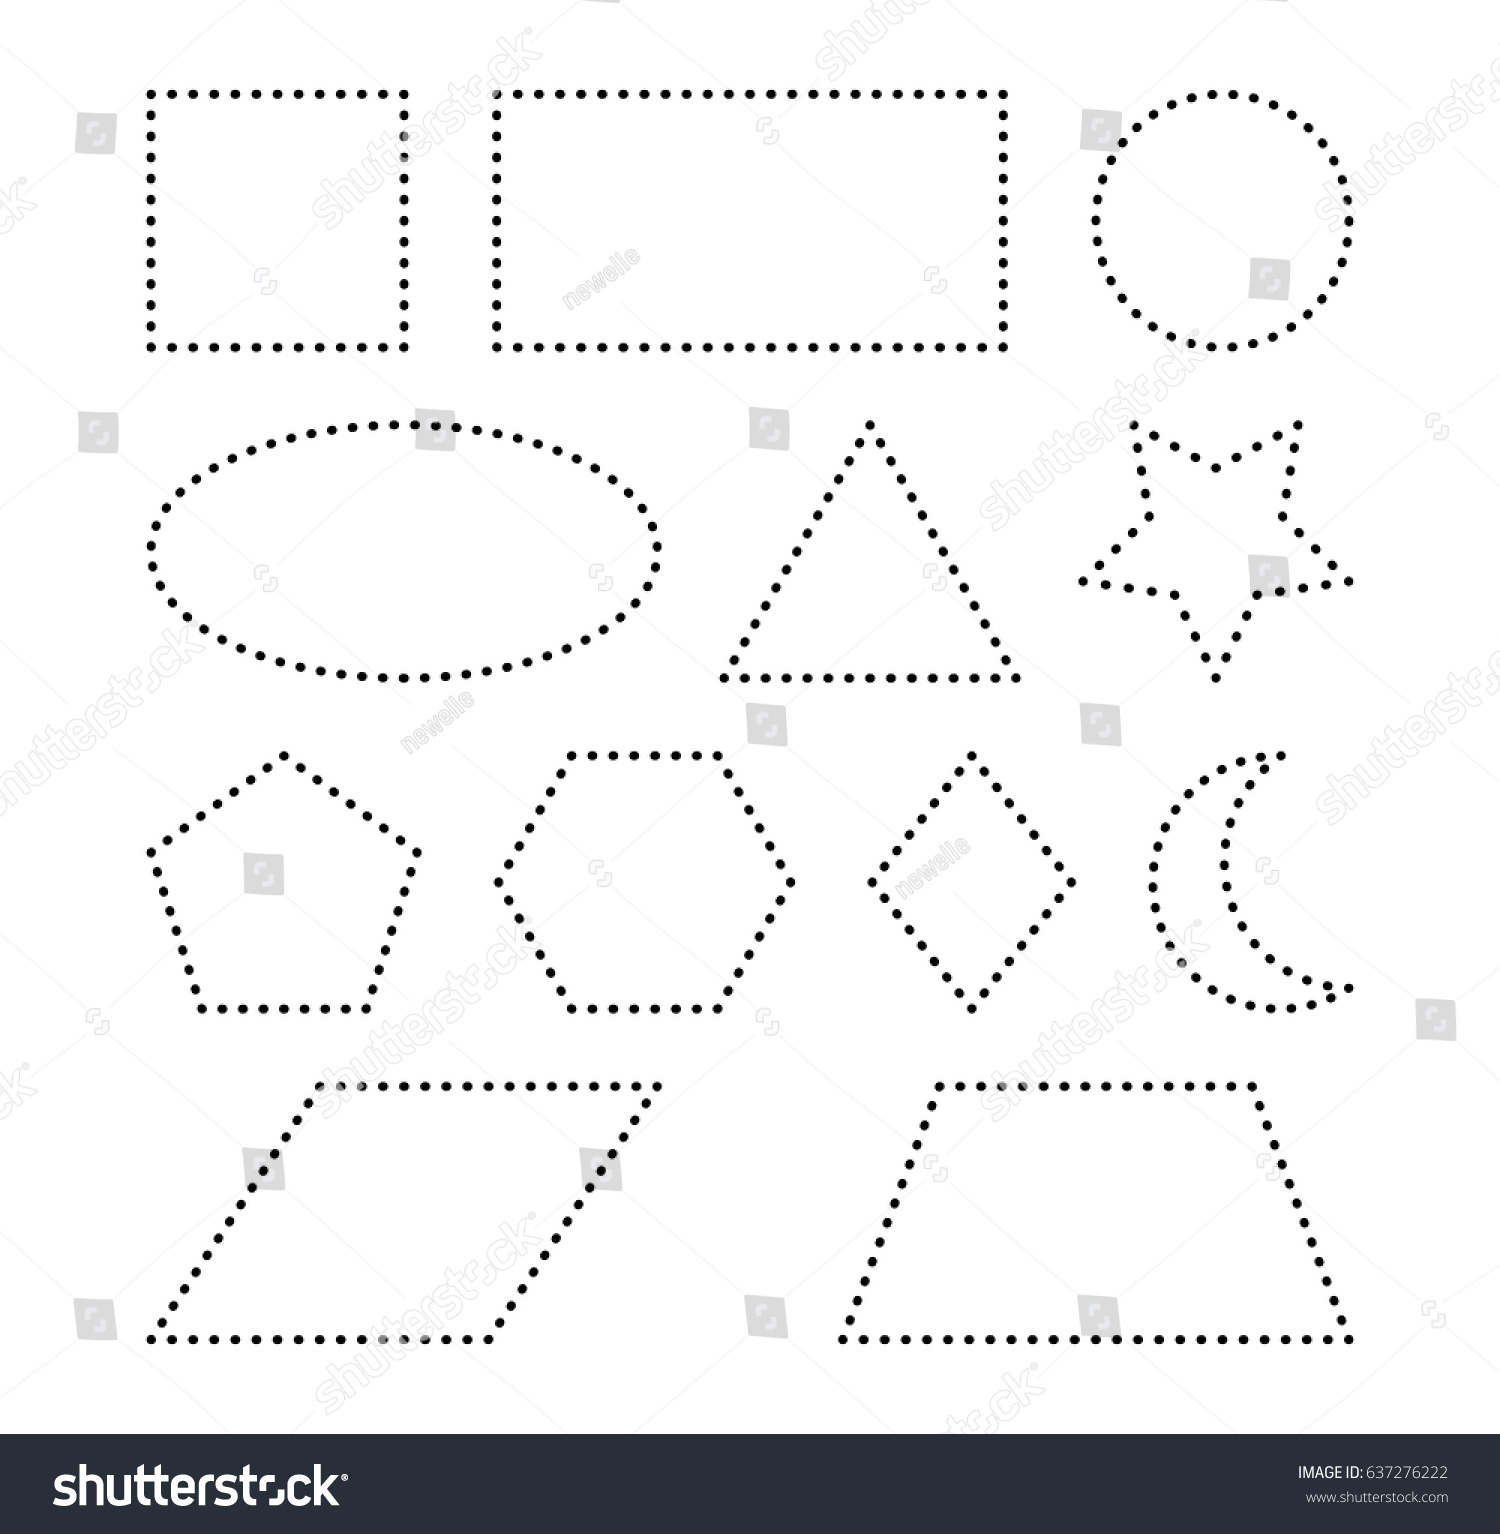 Worksheet Trace A Star